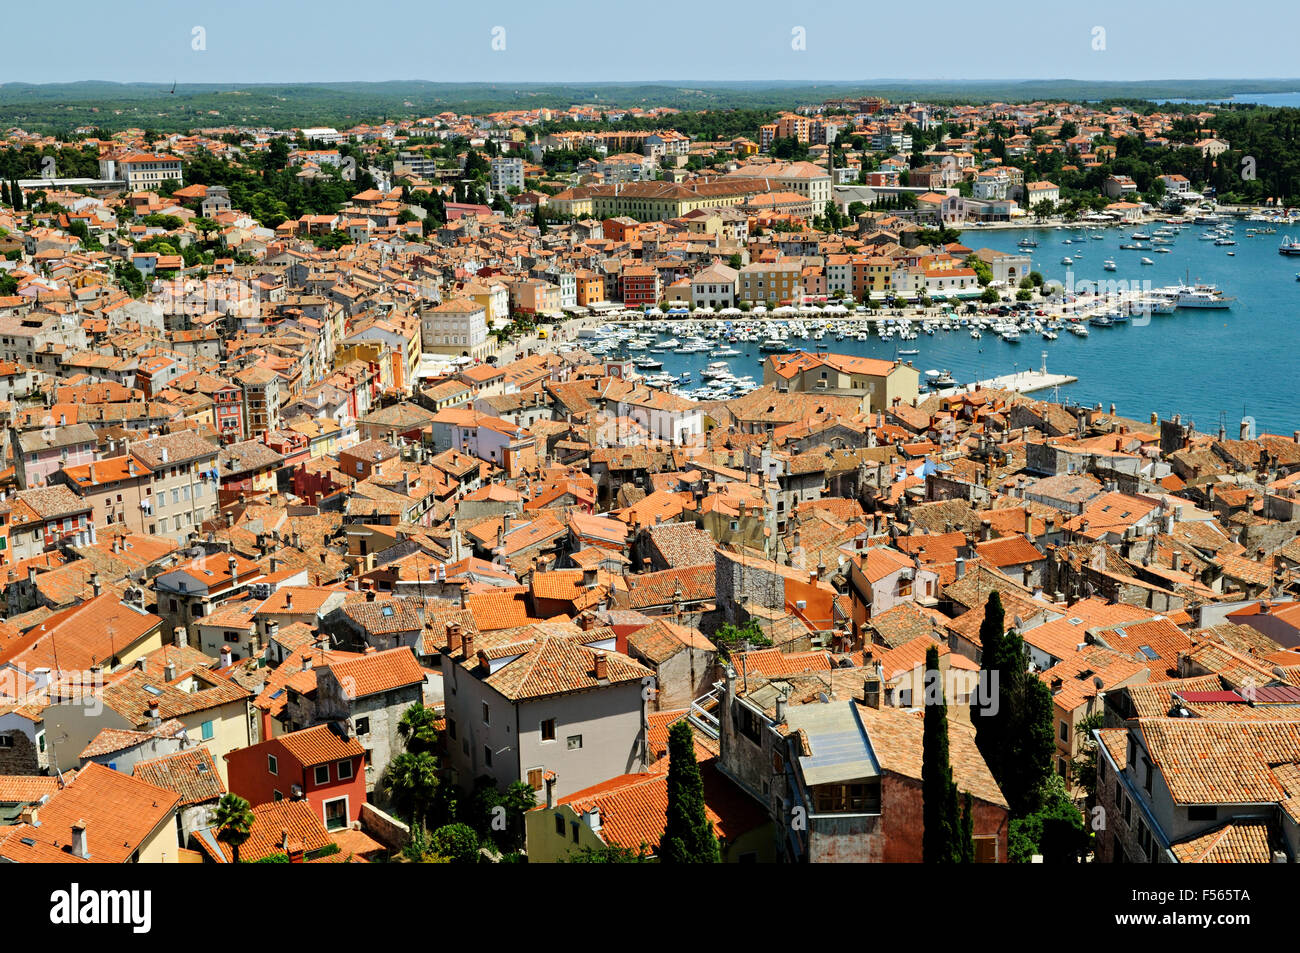 Old town and harbor of Rovinj seen from the bell tower of Saint Euphemia's basilica, Istria, Croatia - Stock Image